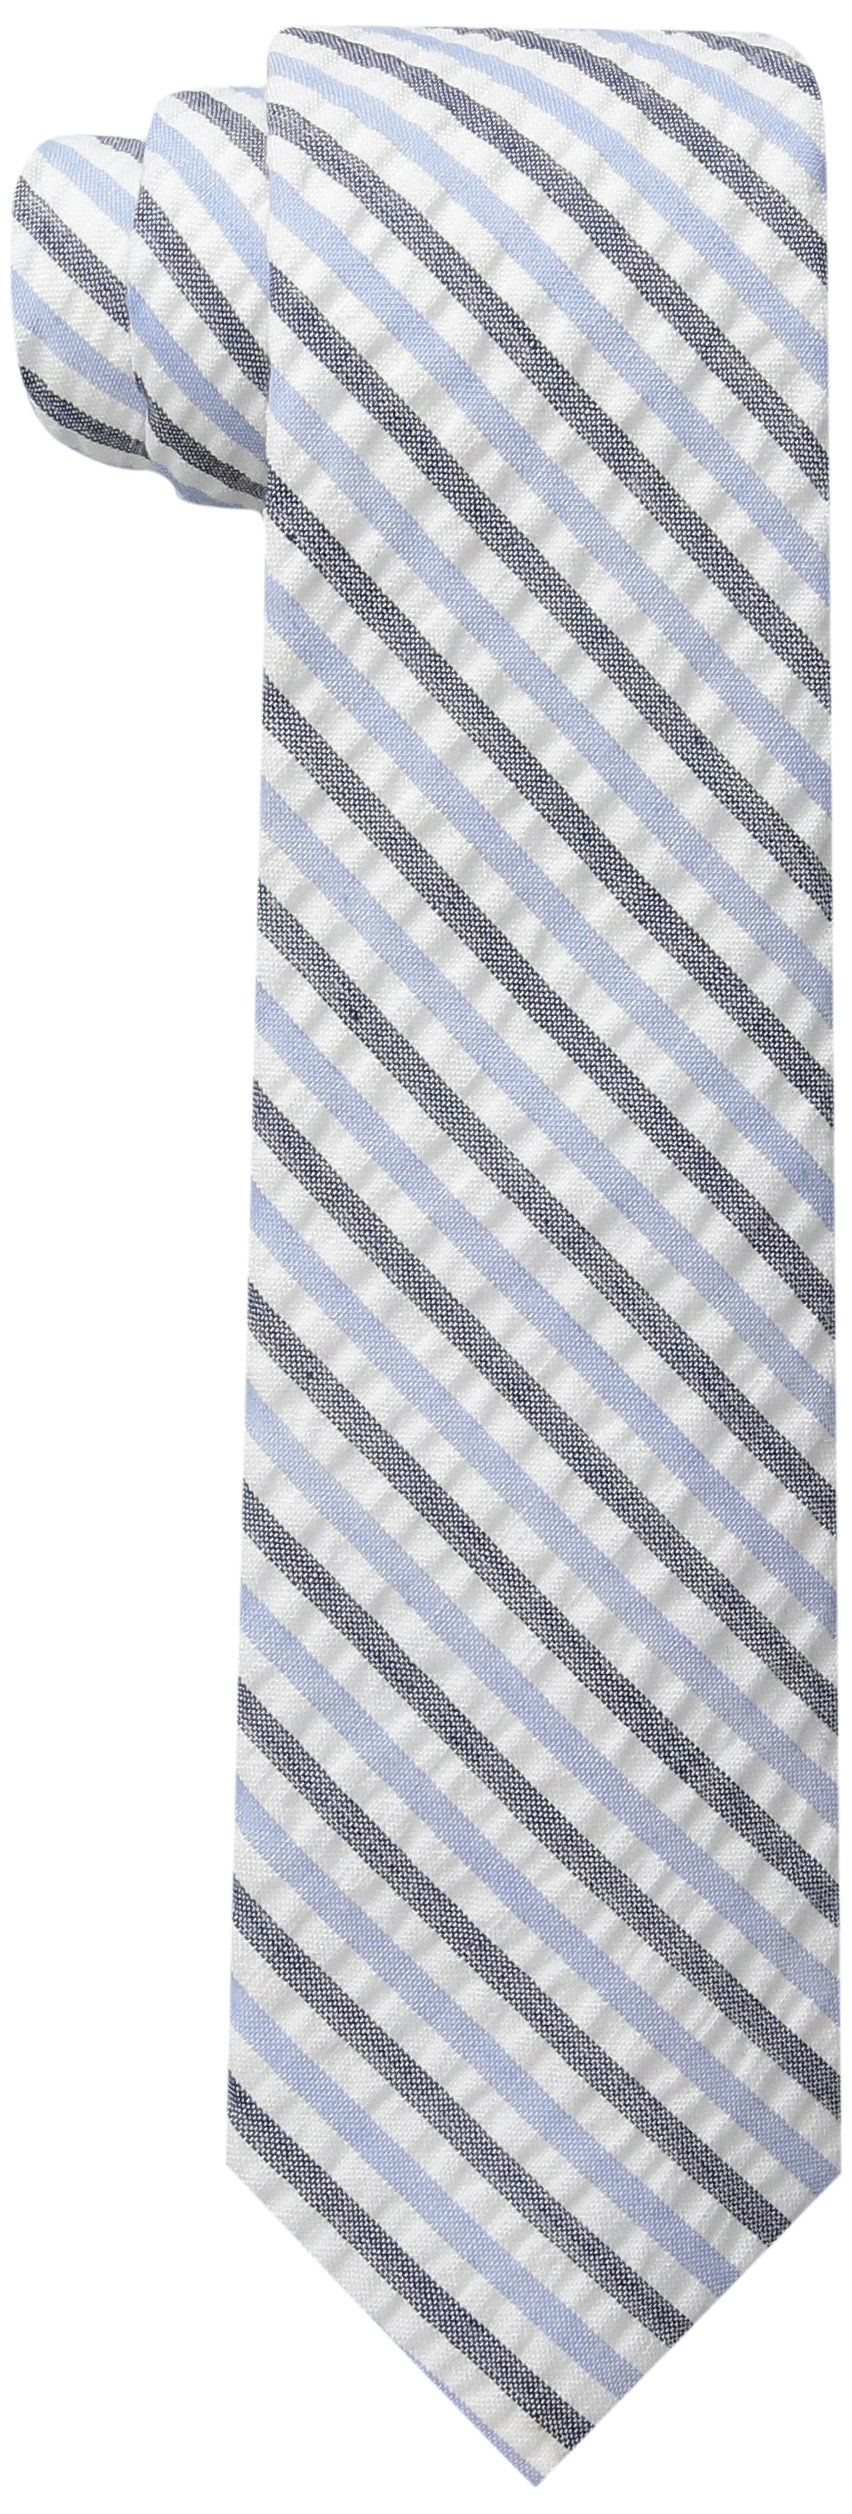 Wembley Big Boys Lyon Stripe Tie, Blue, One Size. 48 inch. Self-tie boys tie (not pre tied).